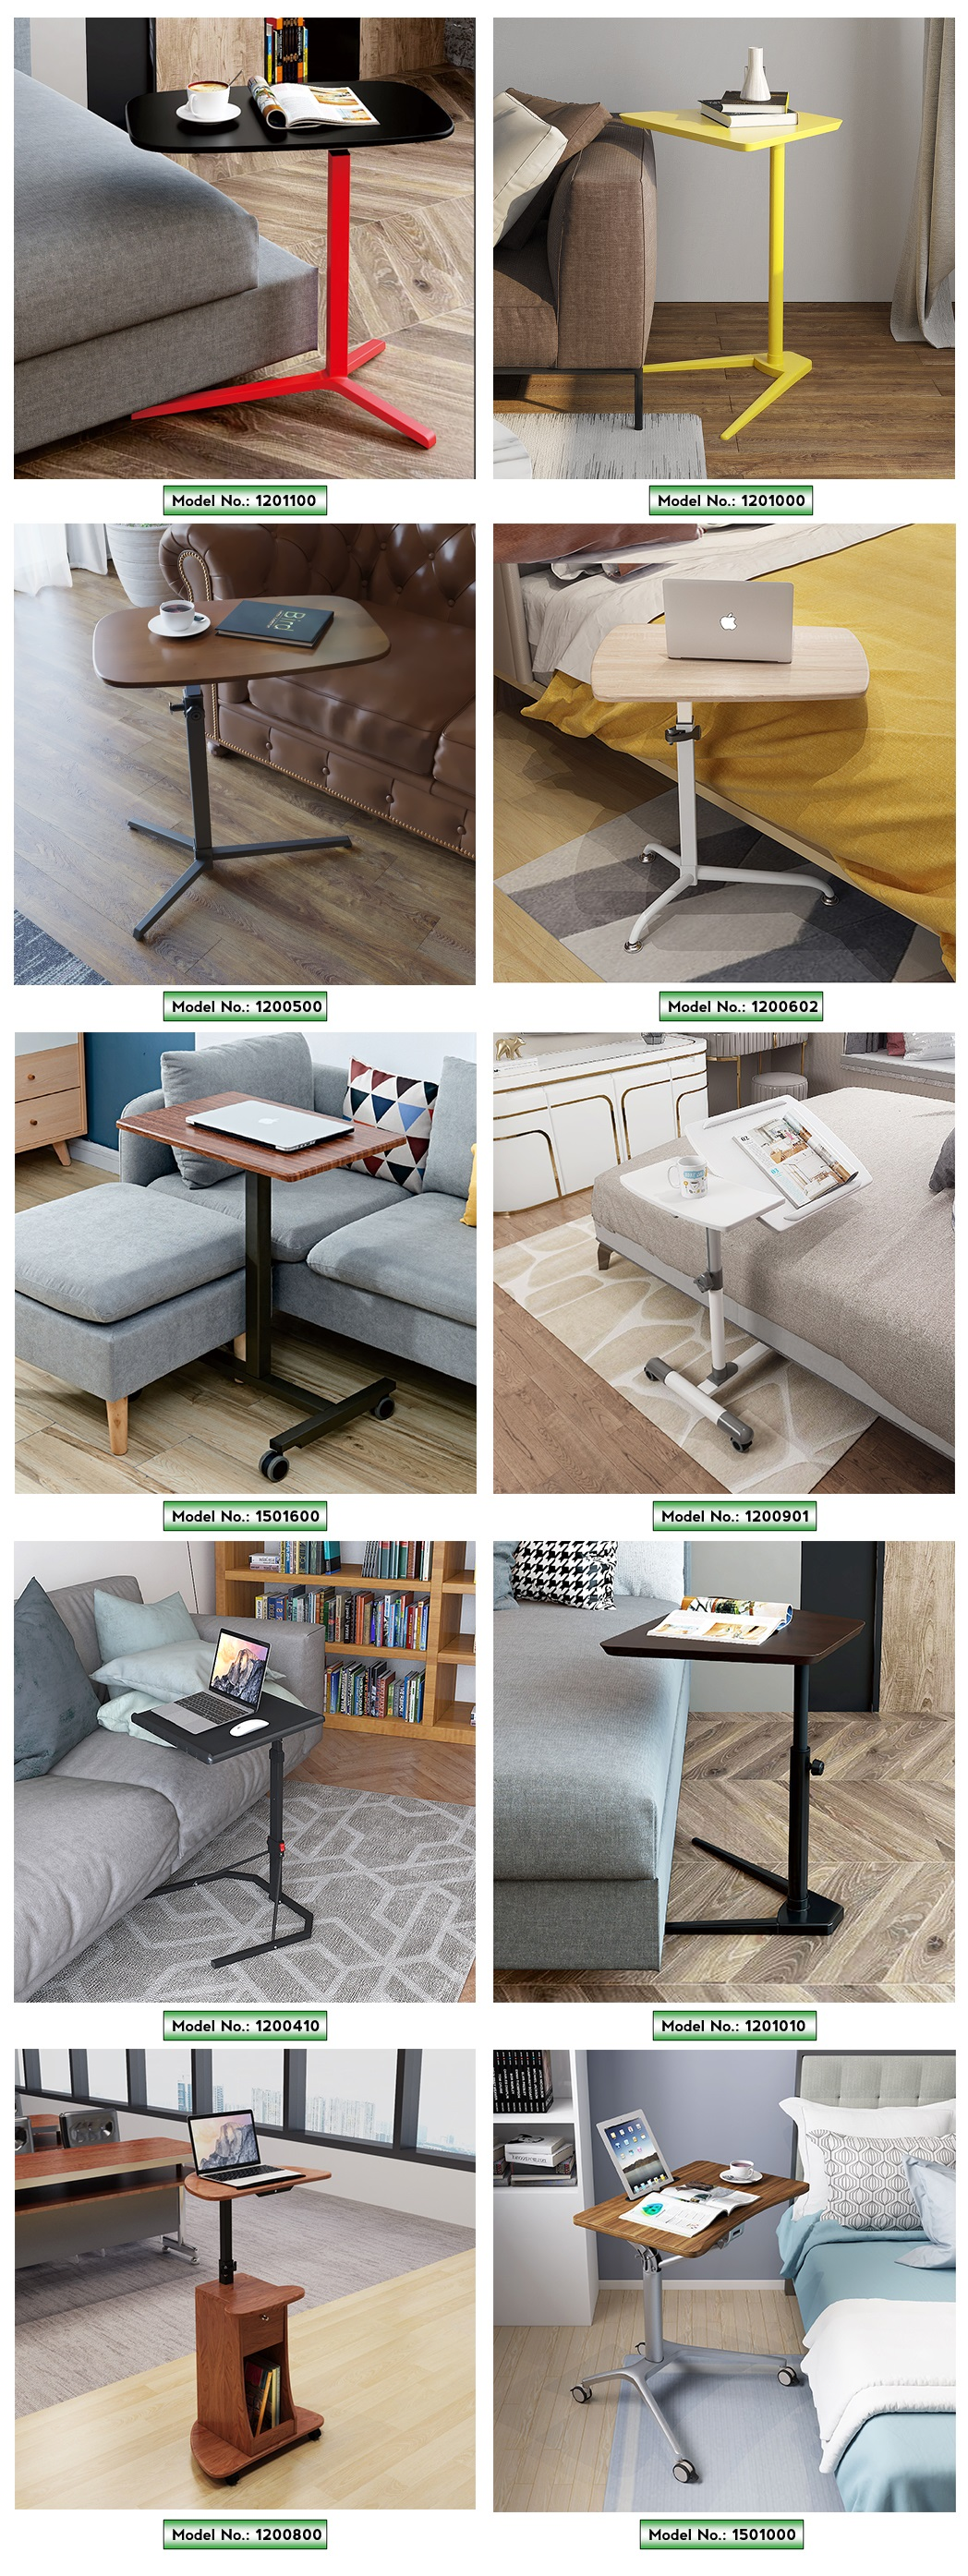 more choice of mobile standing desk overbed table